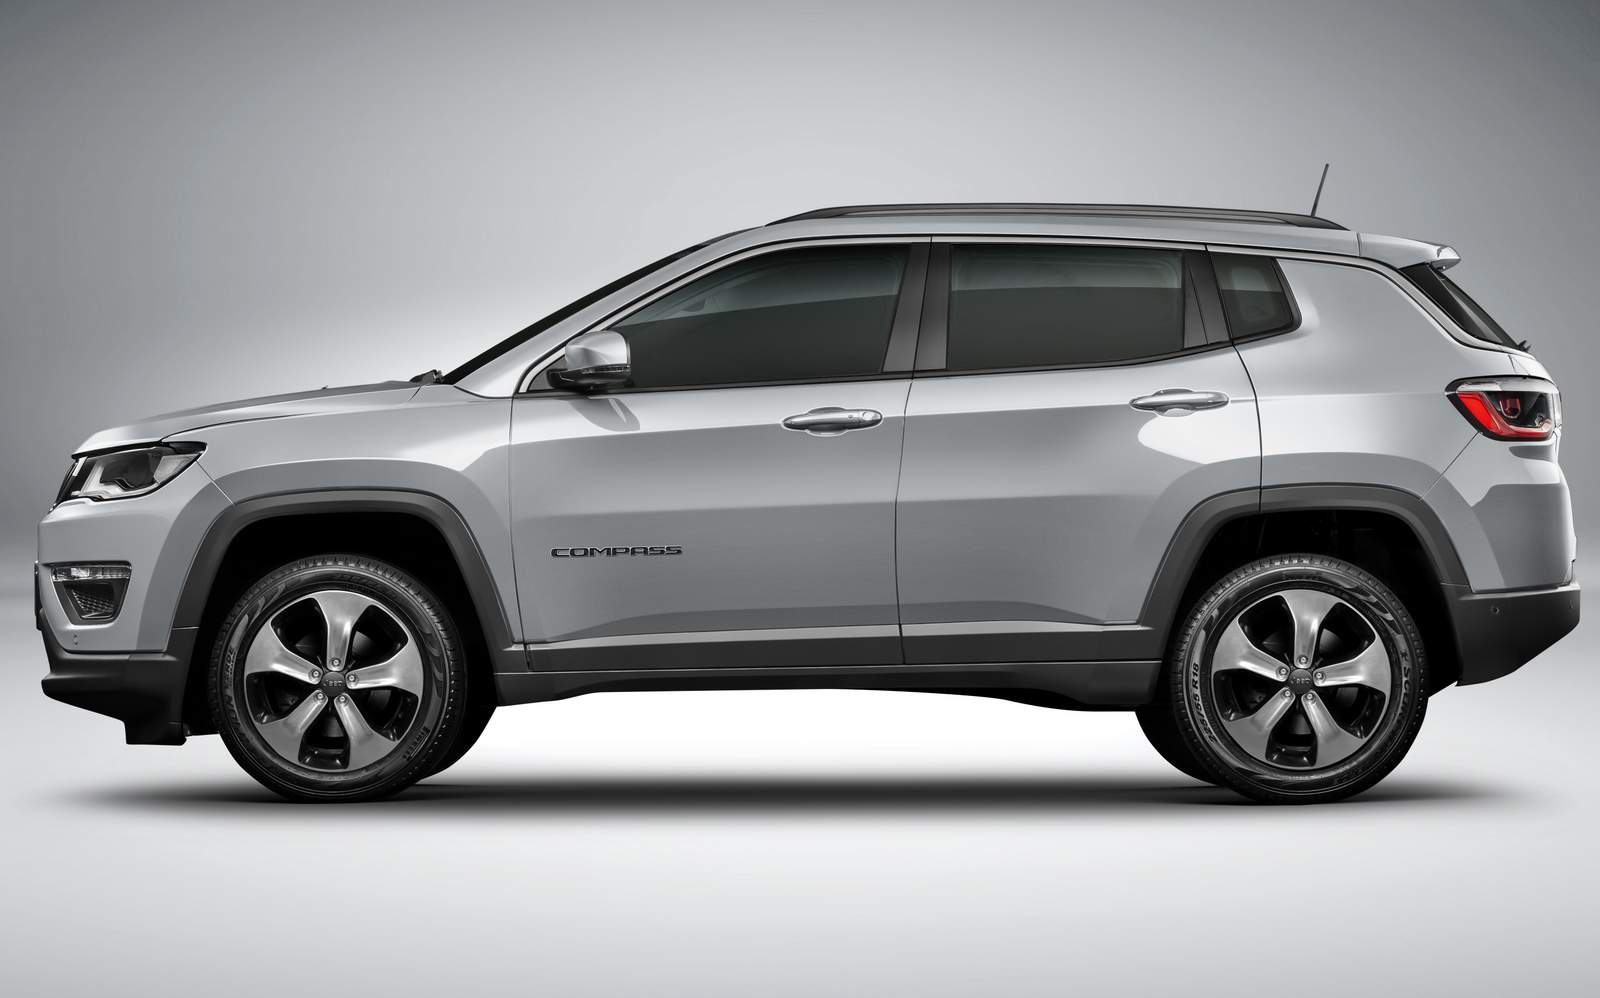 jeep compass flex autom tico desempenho e consumo car blog br. Black Bedroom Furniture Sets. Home Design Ideas